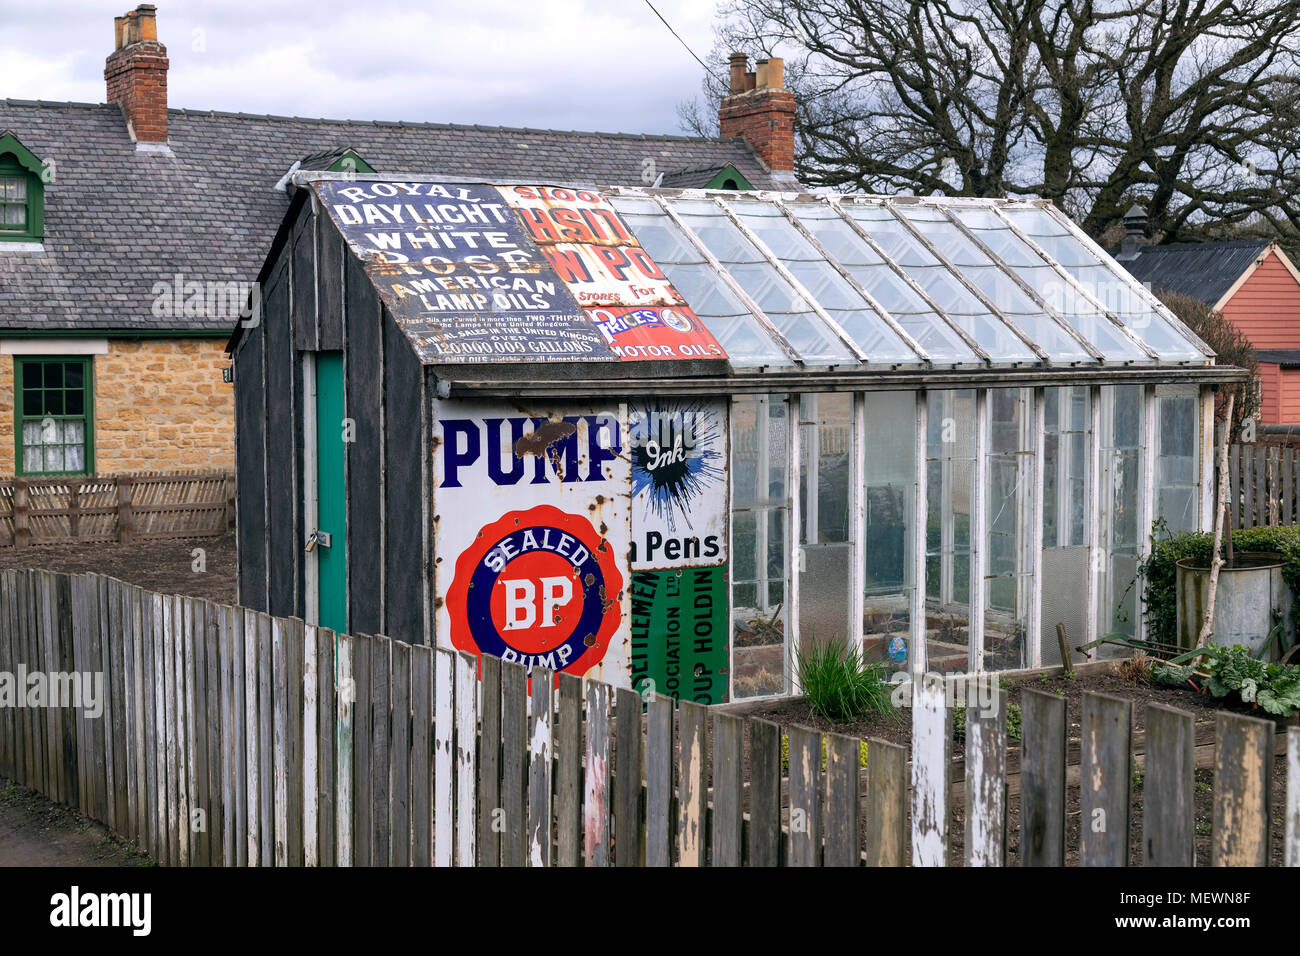 A greenhouse repaired using old metal advertising signs - northeast England. - Stock Image